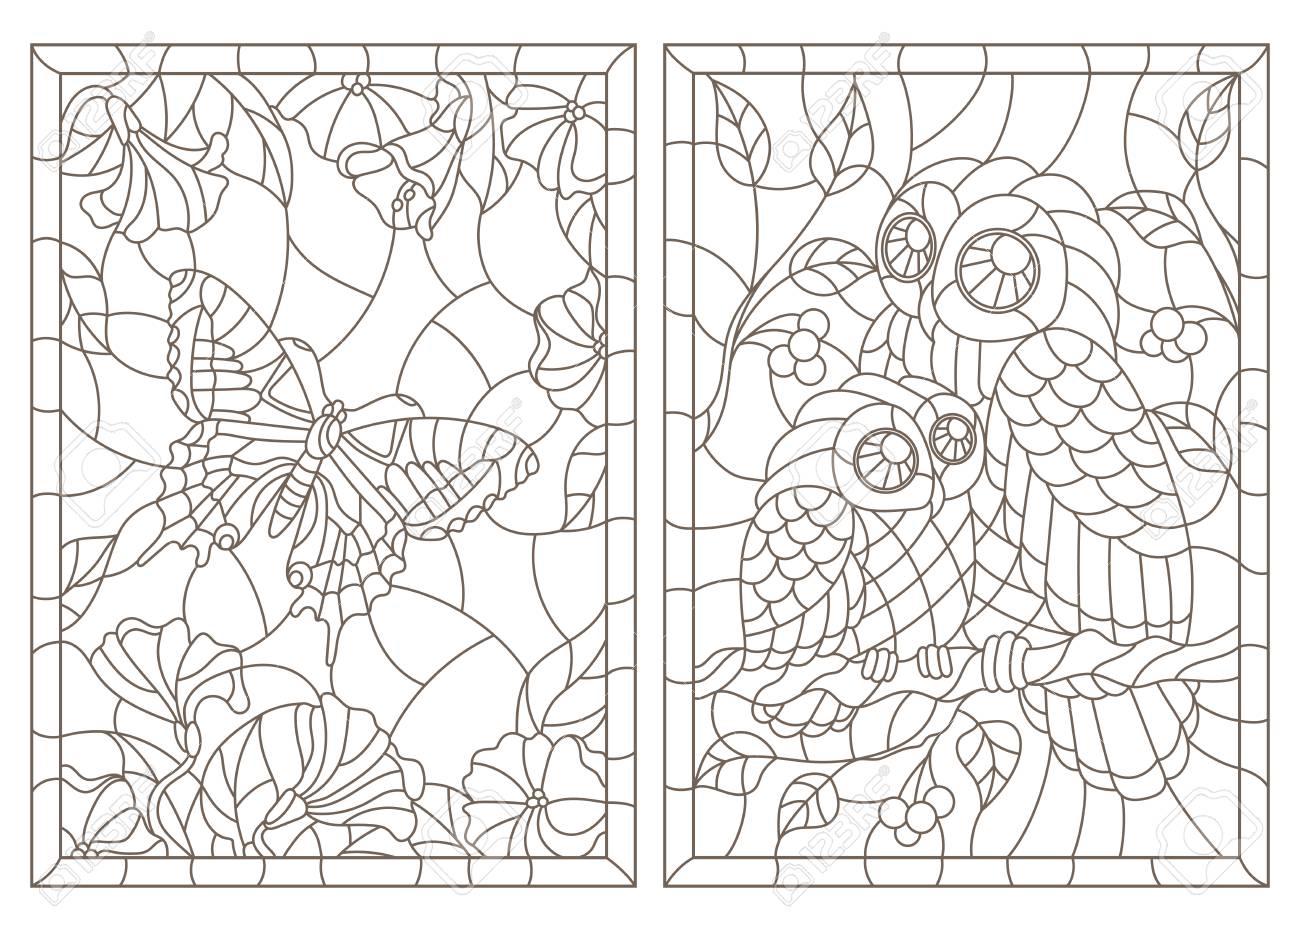 Set of contour illustrations of stained-glass Windows with a butterfly and owls, dark contours on a white background - 109901468